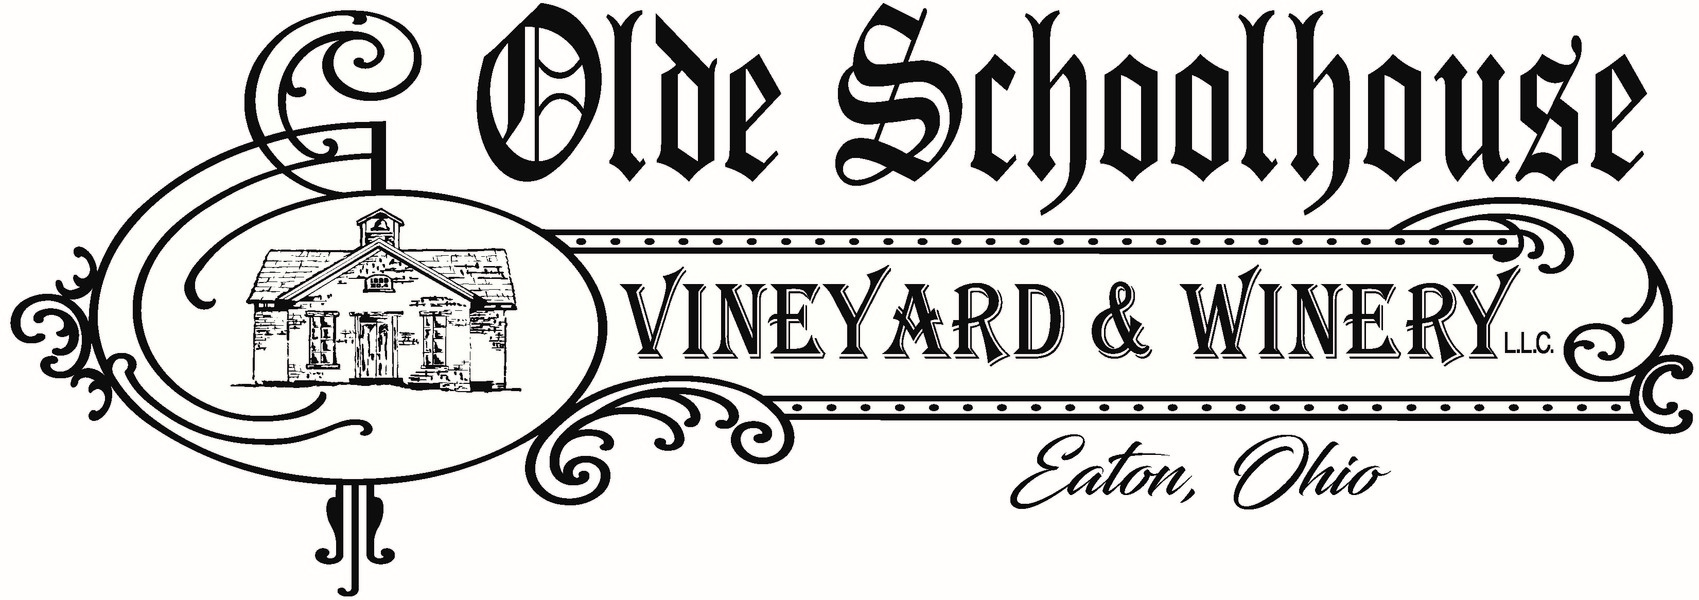 Brand for Olde Schoolhouse Vineyard & Winery LLC